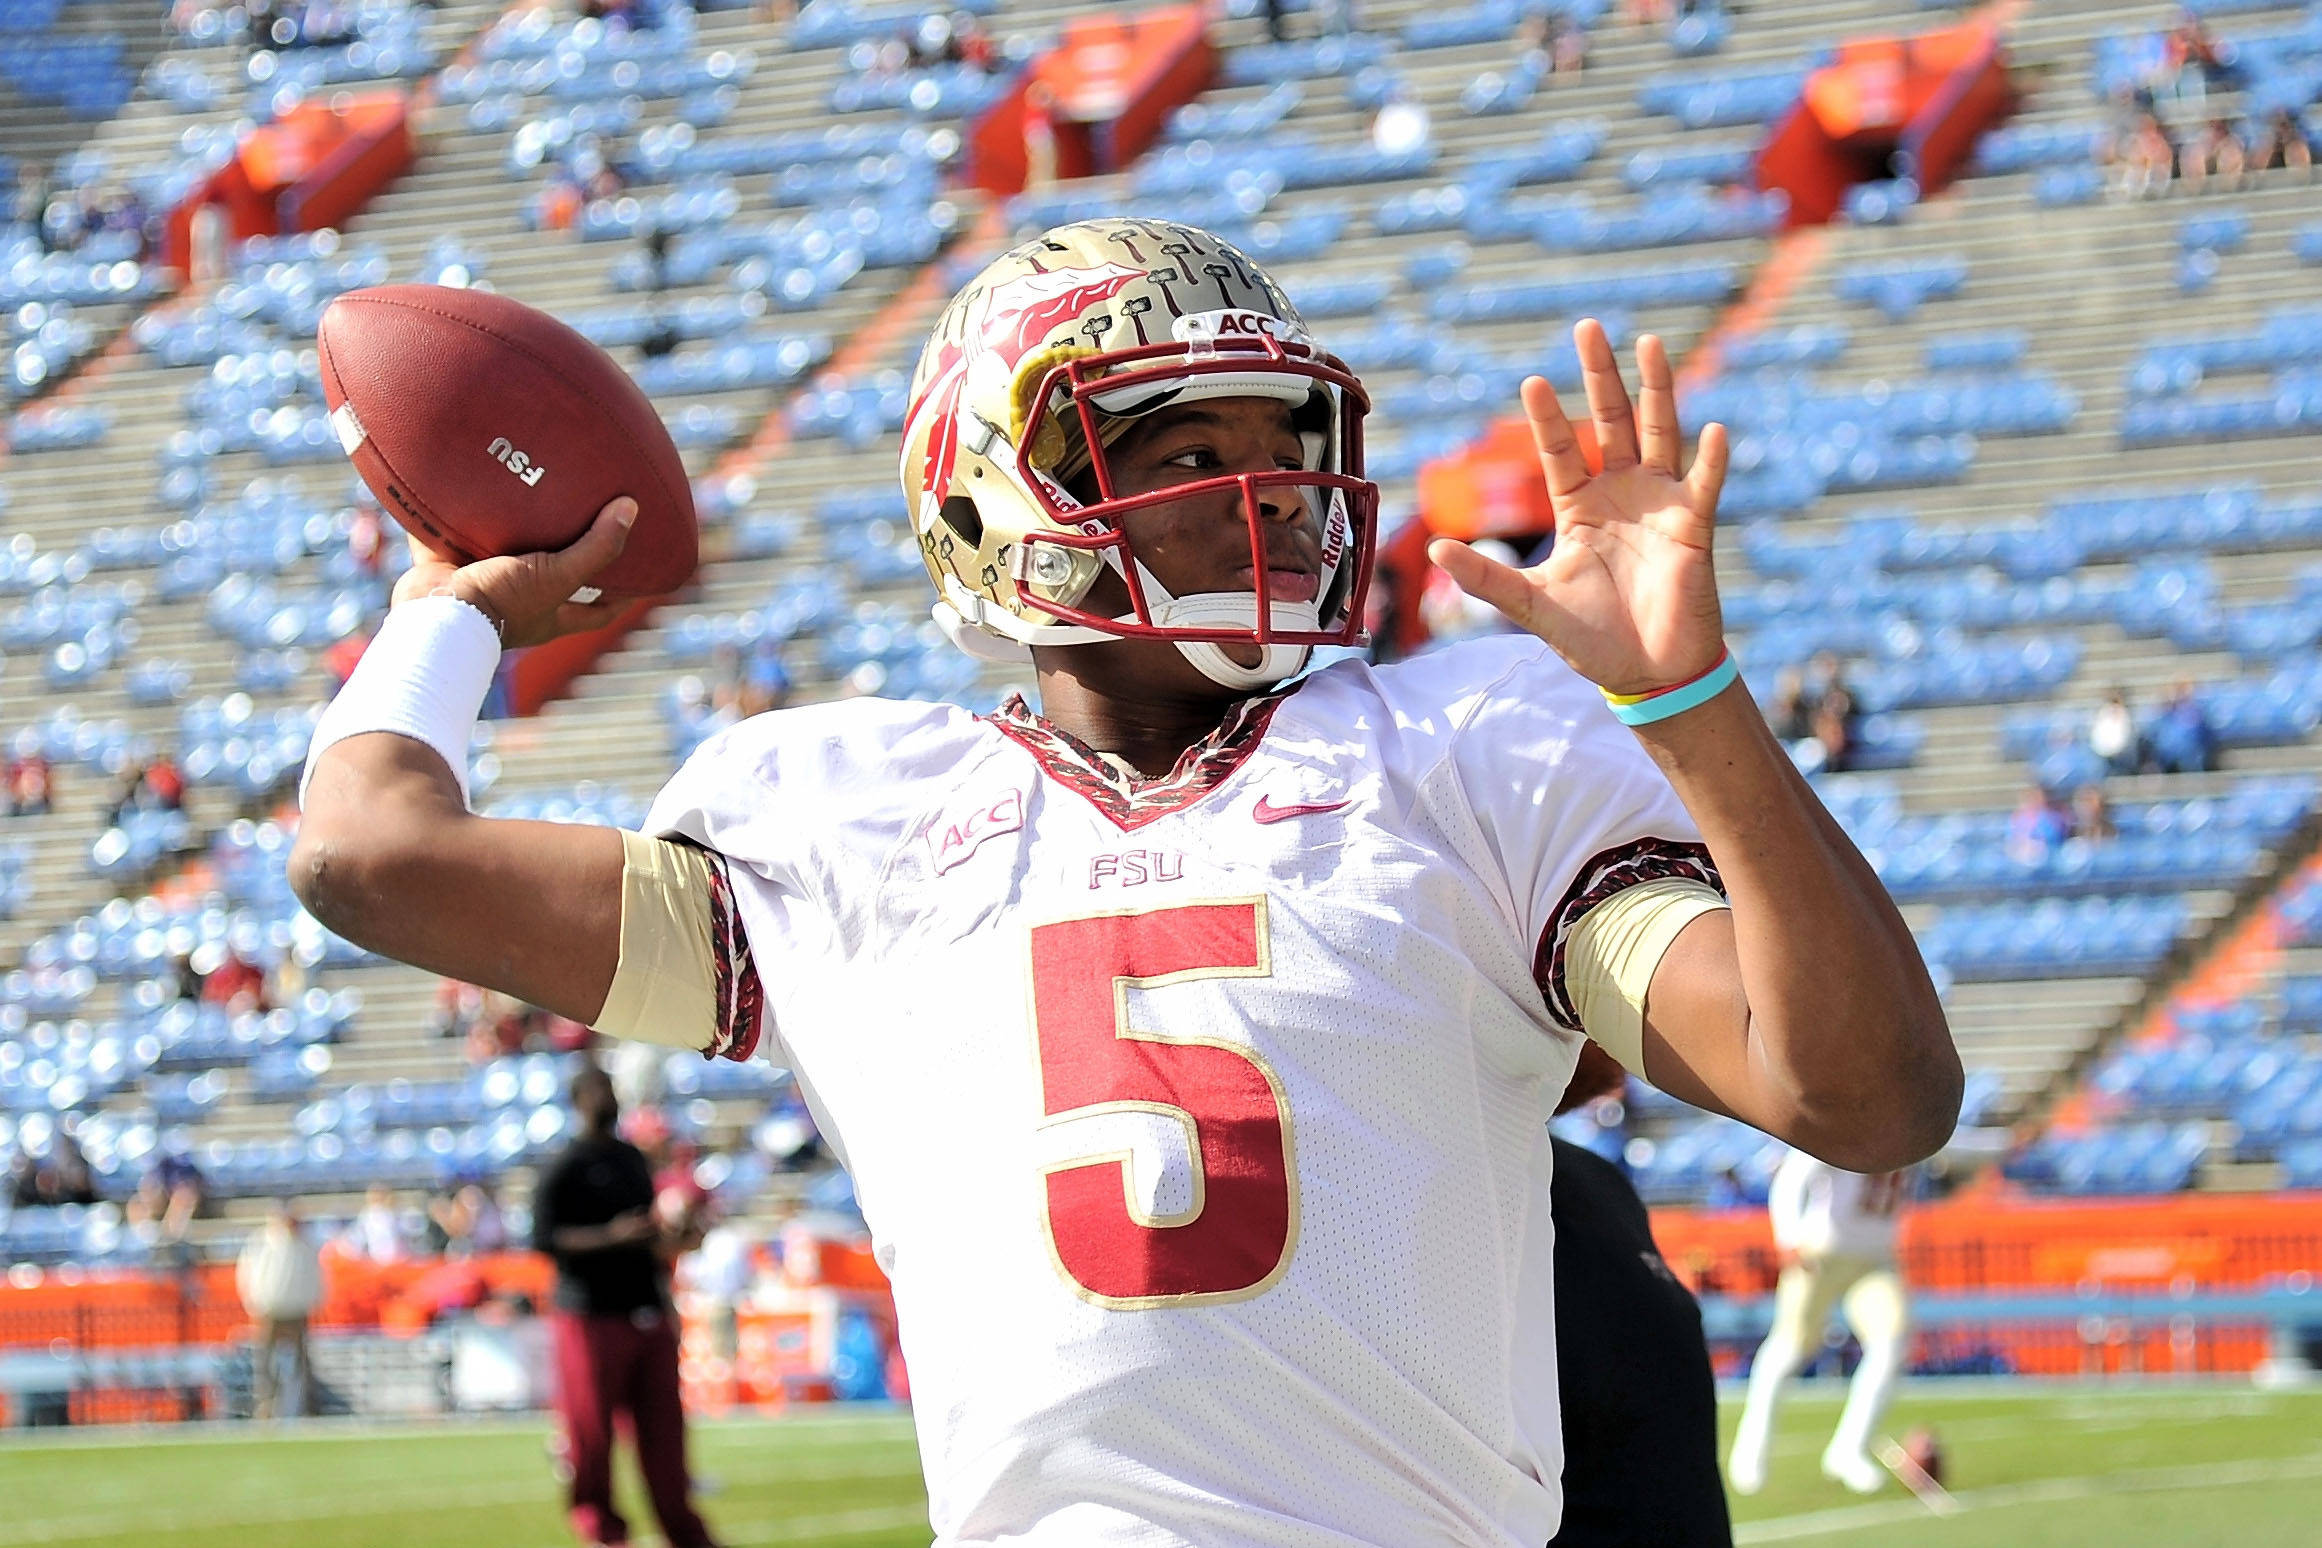 Jameis Winston (5) warms up prior to a game. Mandatory Credit: Steve Mitchell-USA TODAY Sports